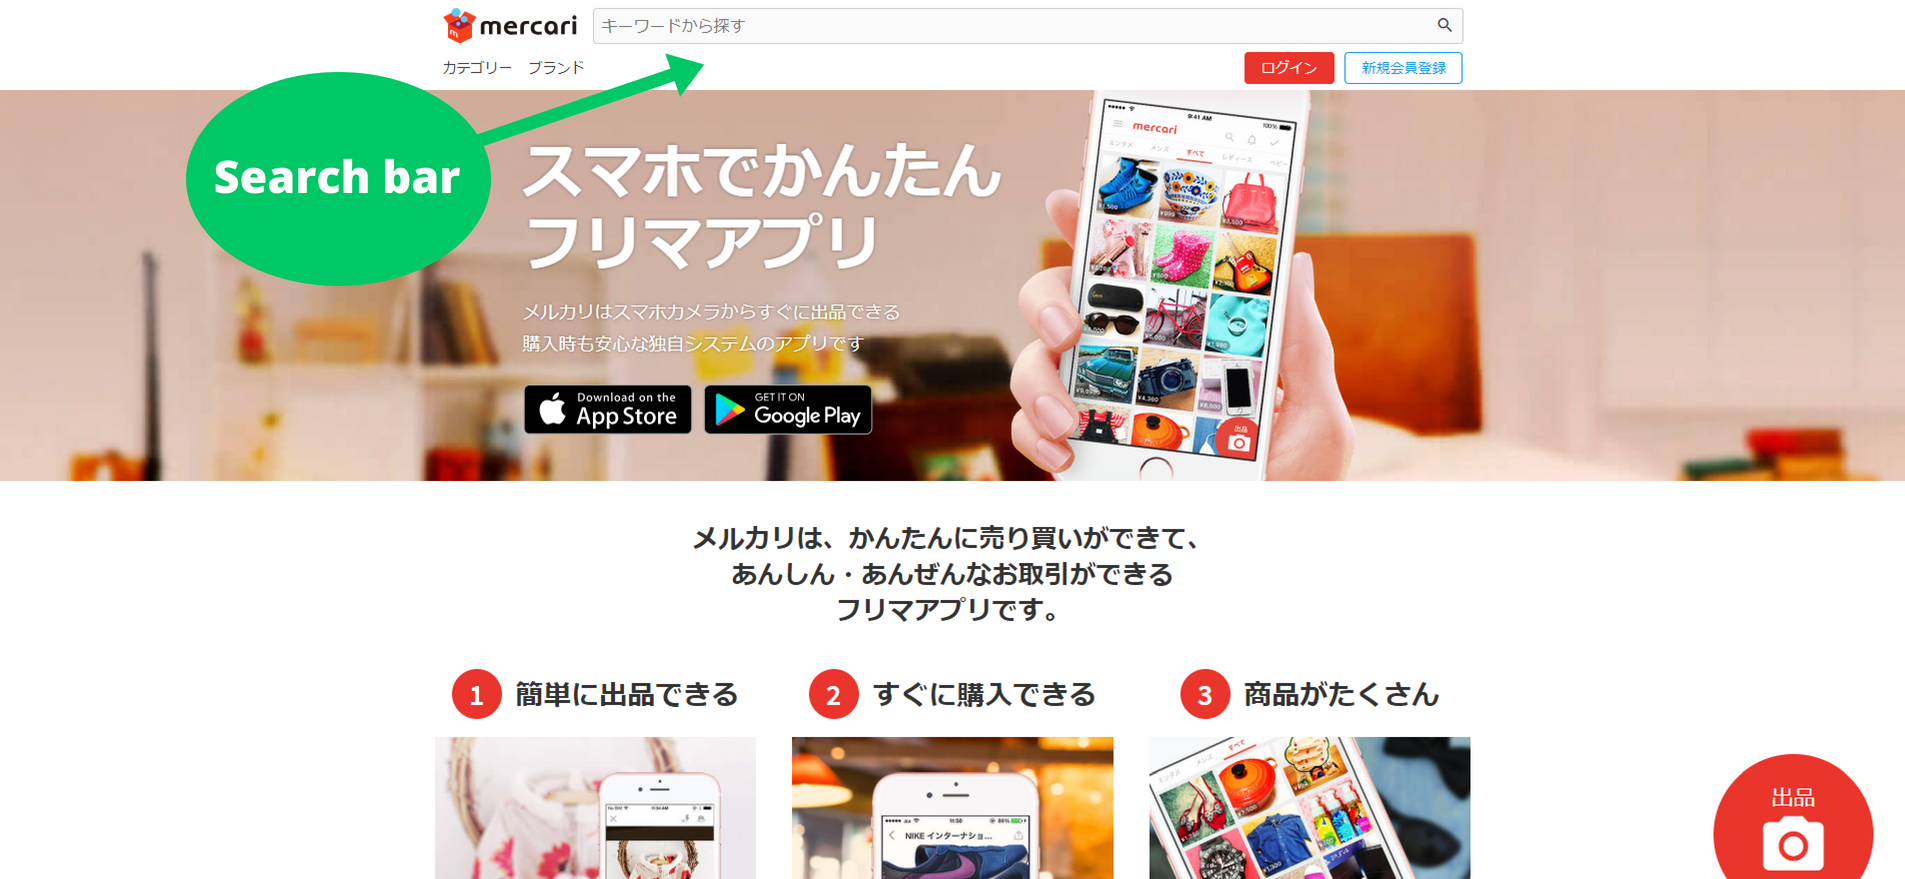 How to buy from Mercari Japan | White Rabbit Express